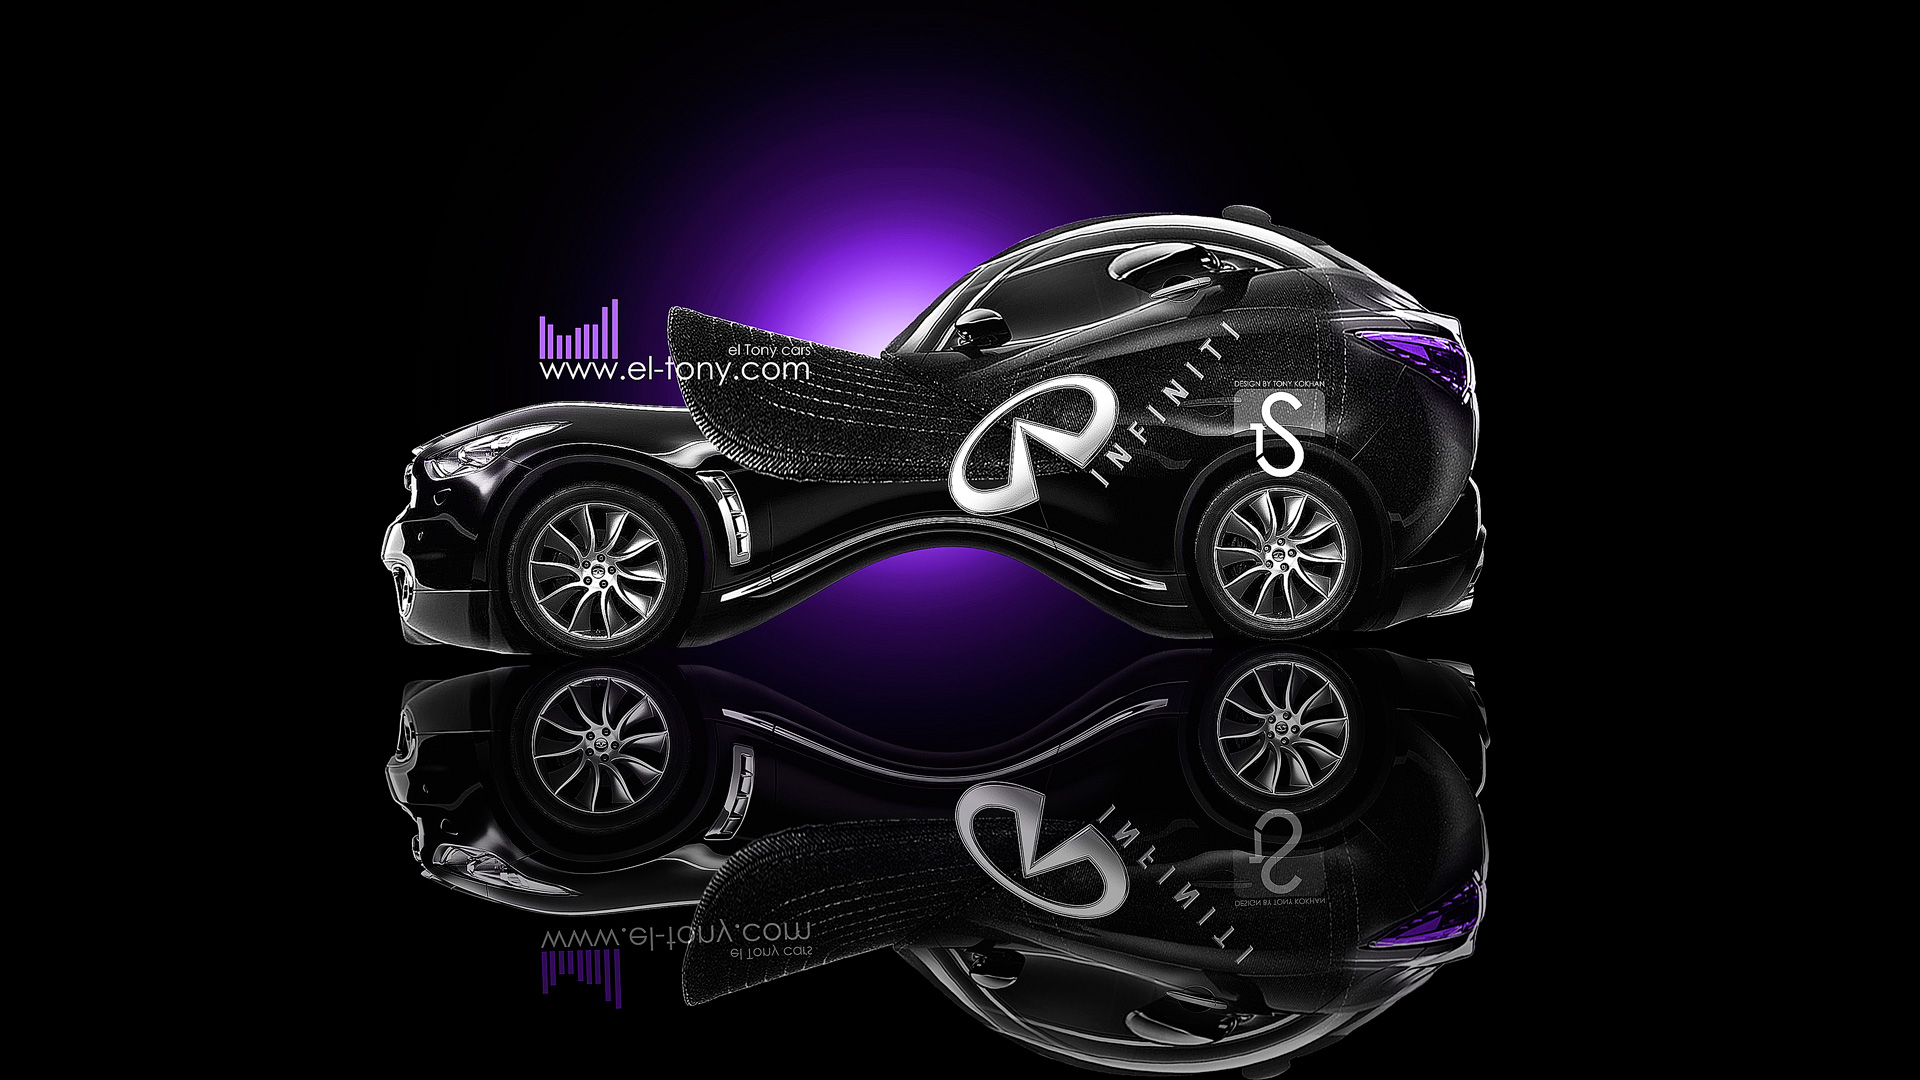 Captivating Infiniti FX35 Baseball Fantasy Car 2013 Violet Neon  ...